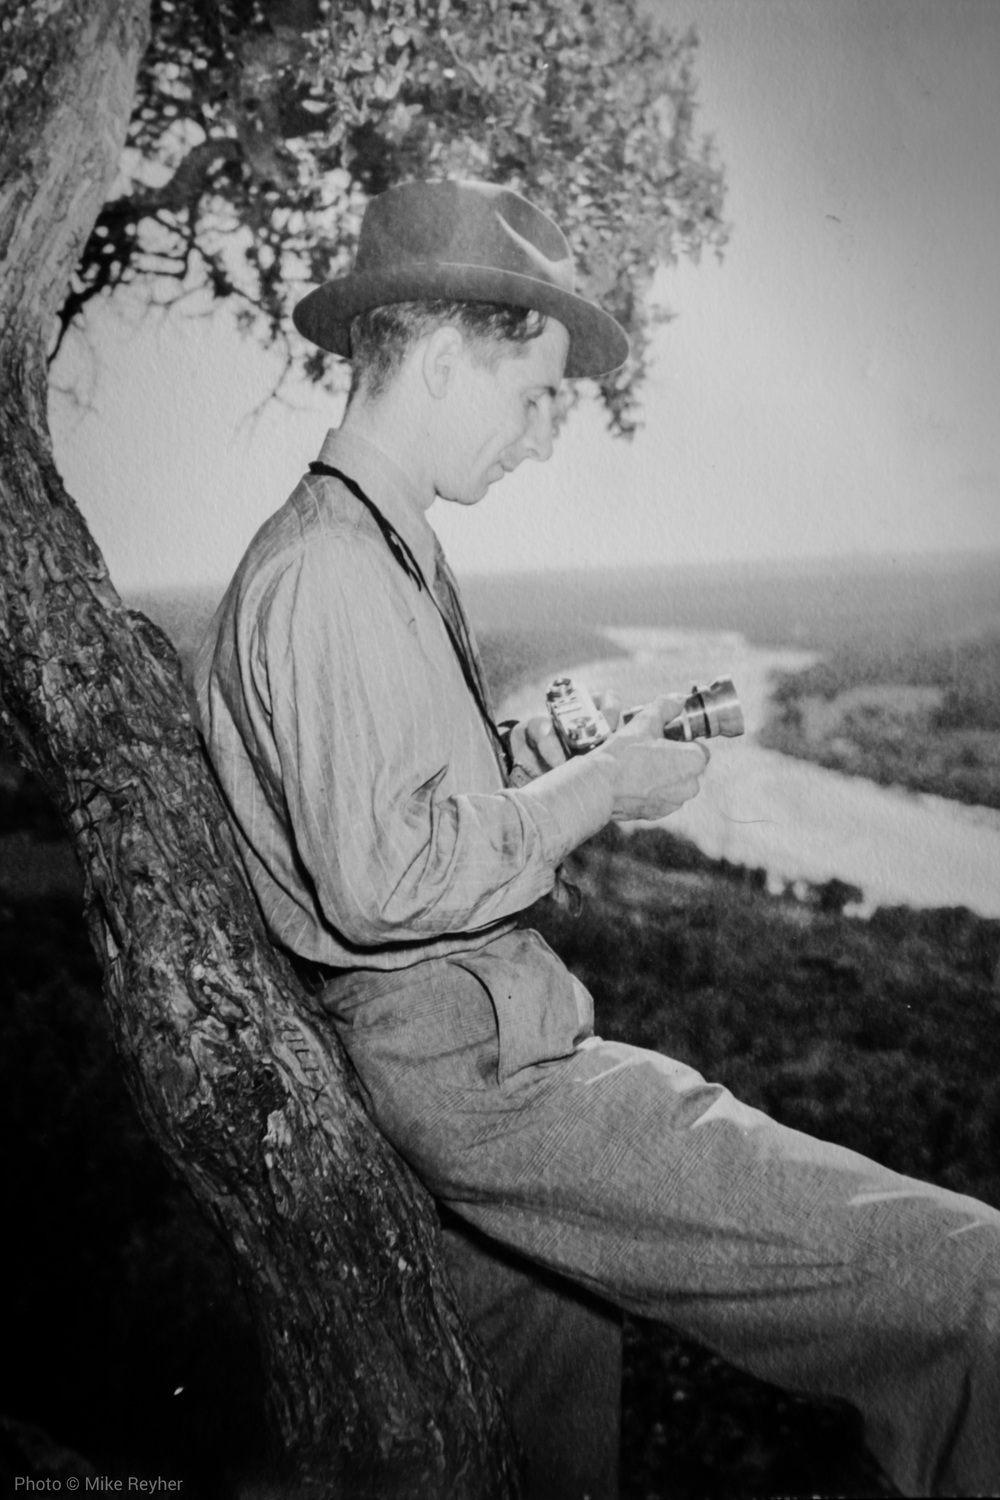 My grandfather, Christopher Harrison Reyher, Sr. circa 1936 with a rangefinder camera I would later use in the 1970's in my first photography class. Like me, he was both an artist and technologist working as an engineer for RCA working on the development of sonar systems and television products.